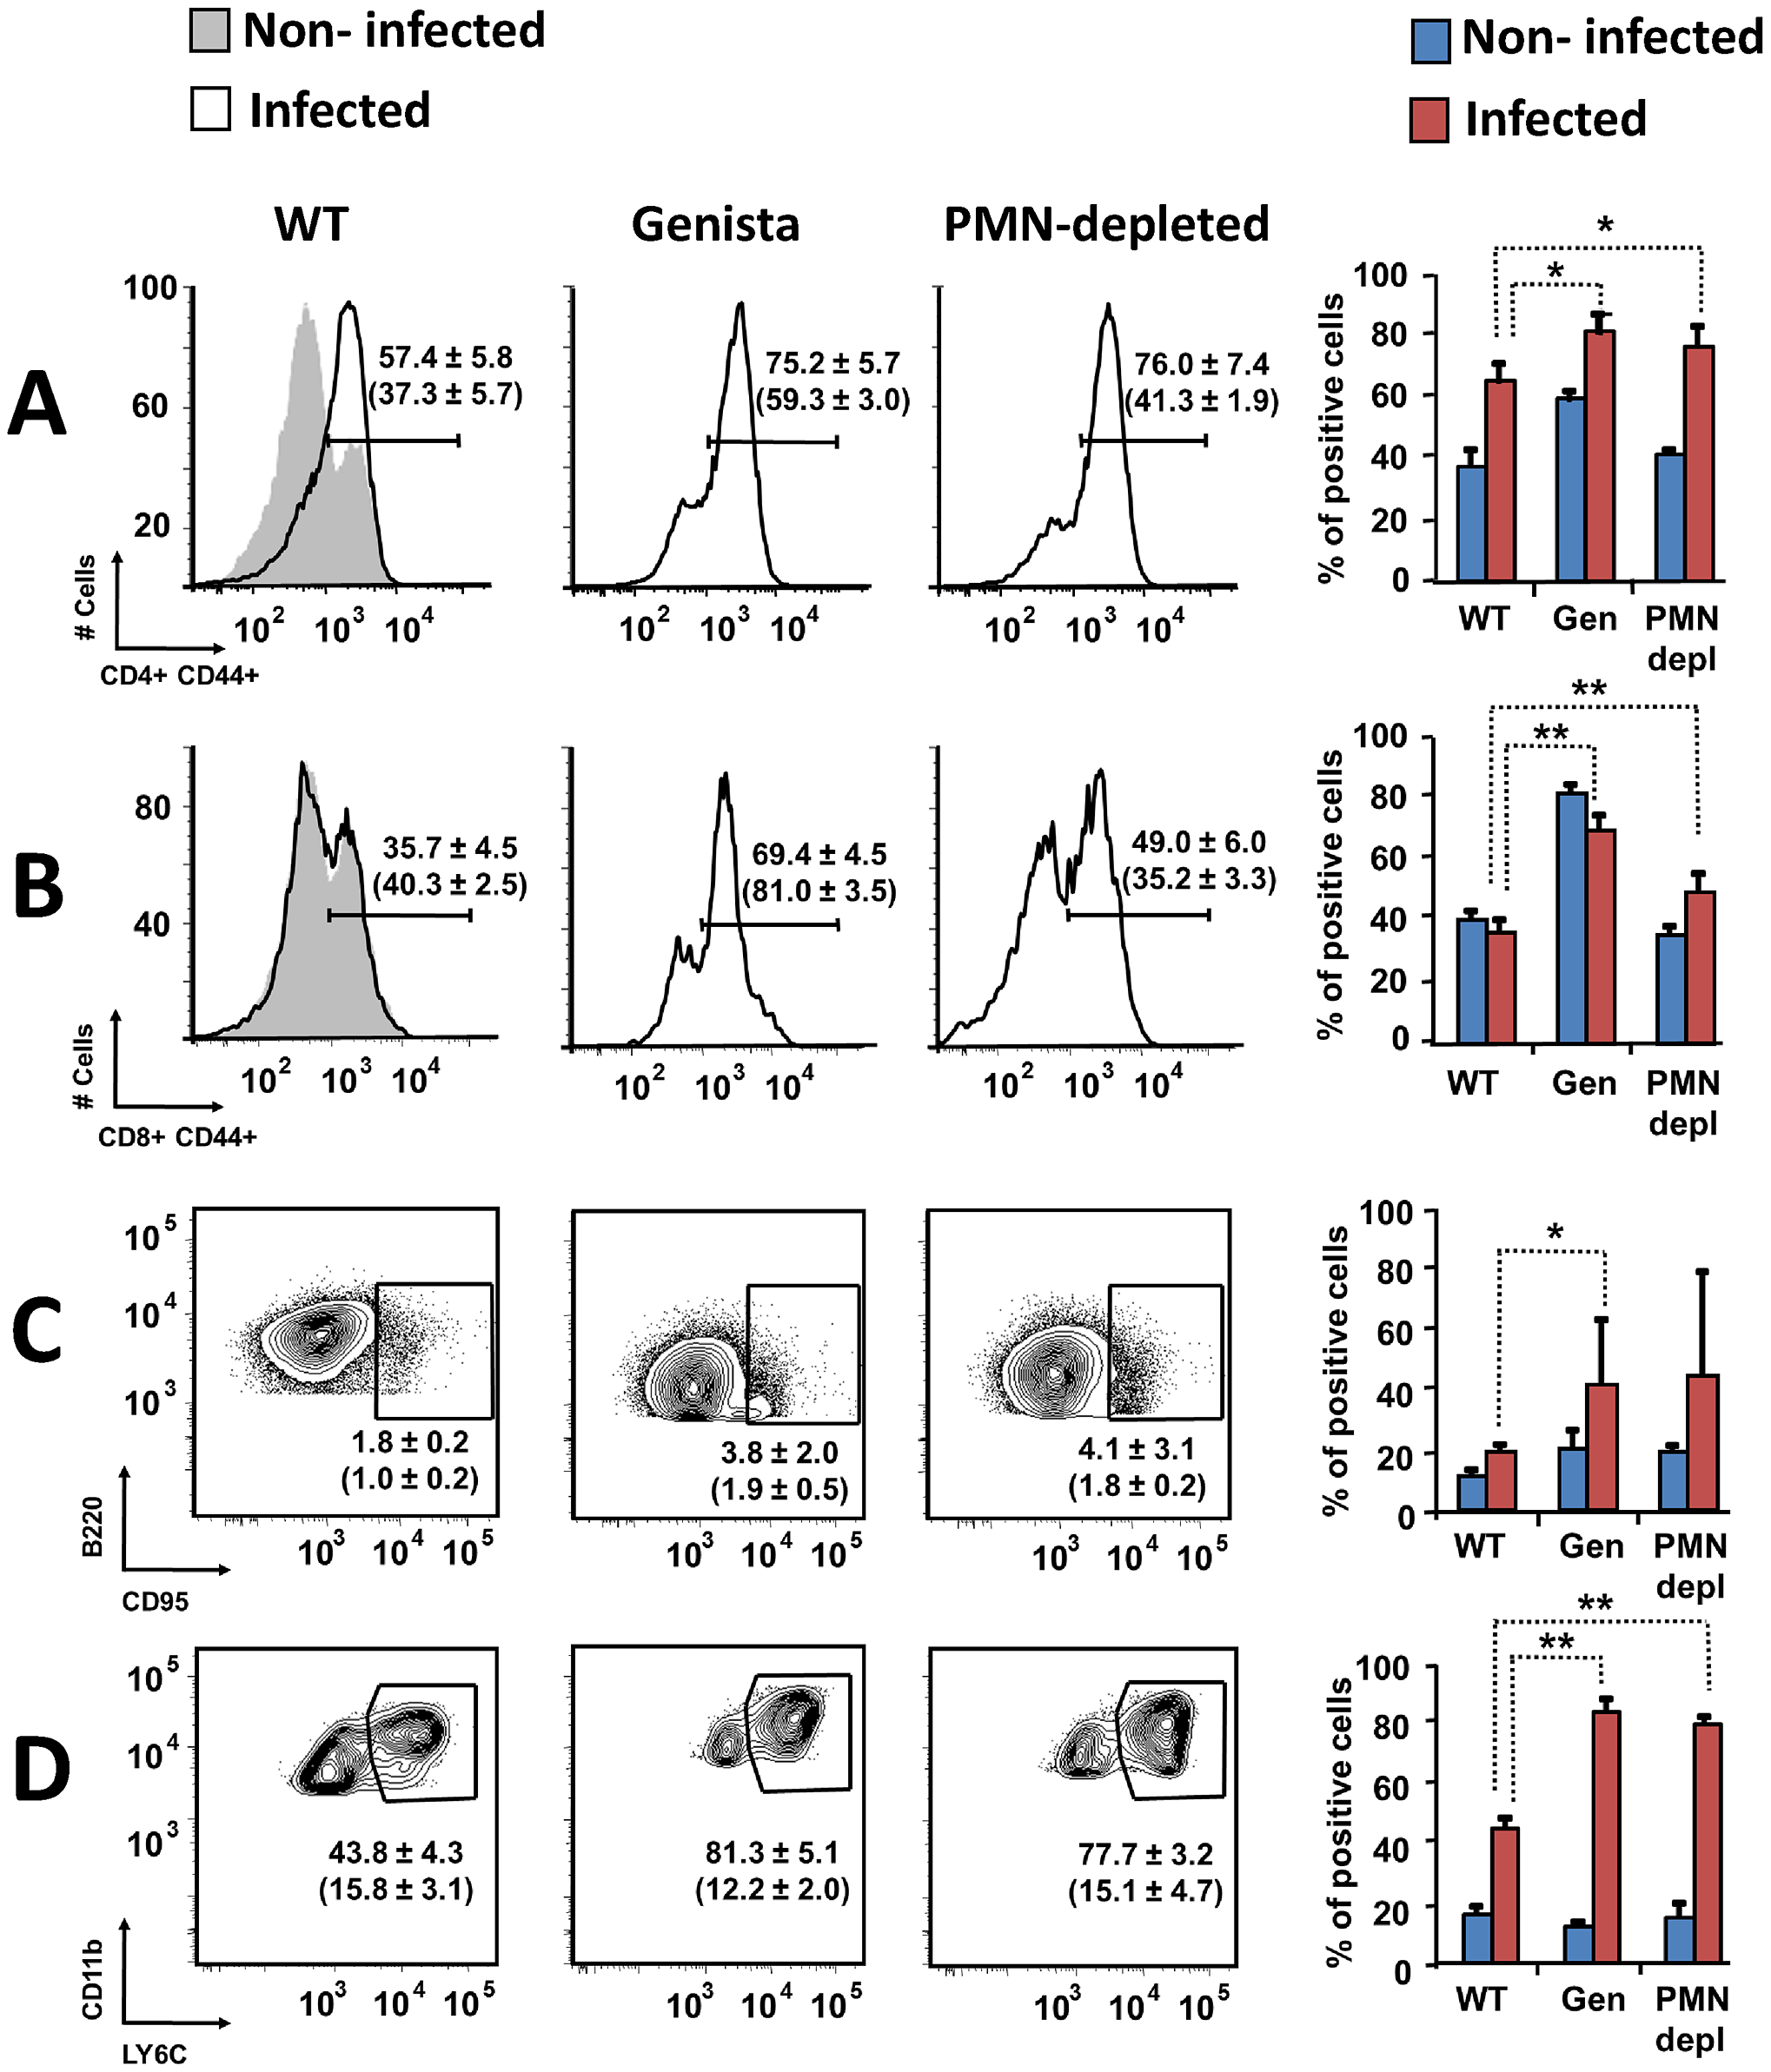 Activation of T and B lymphocytes and recruitment of monocytes in WT and neutropenic mice (Genista and PMN-depleted) at 8 days post-infection.